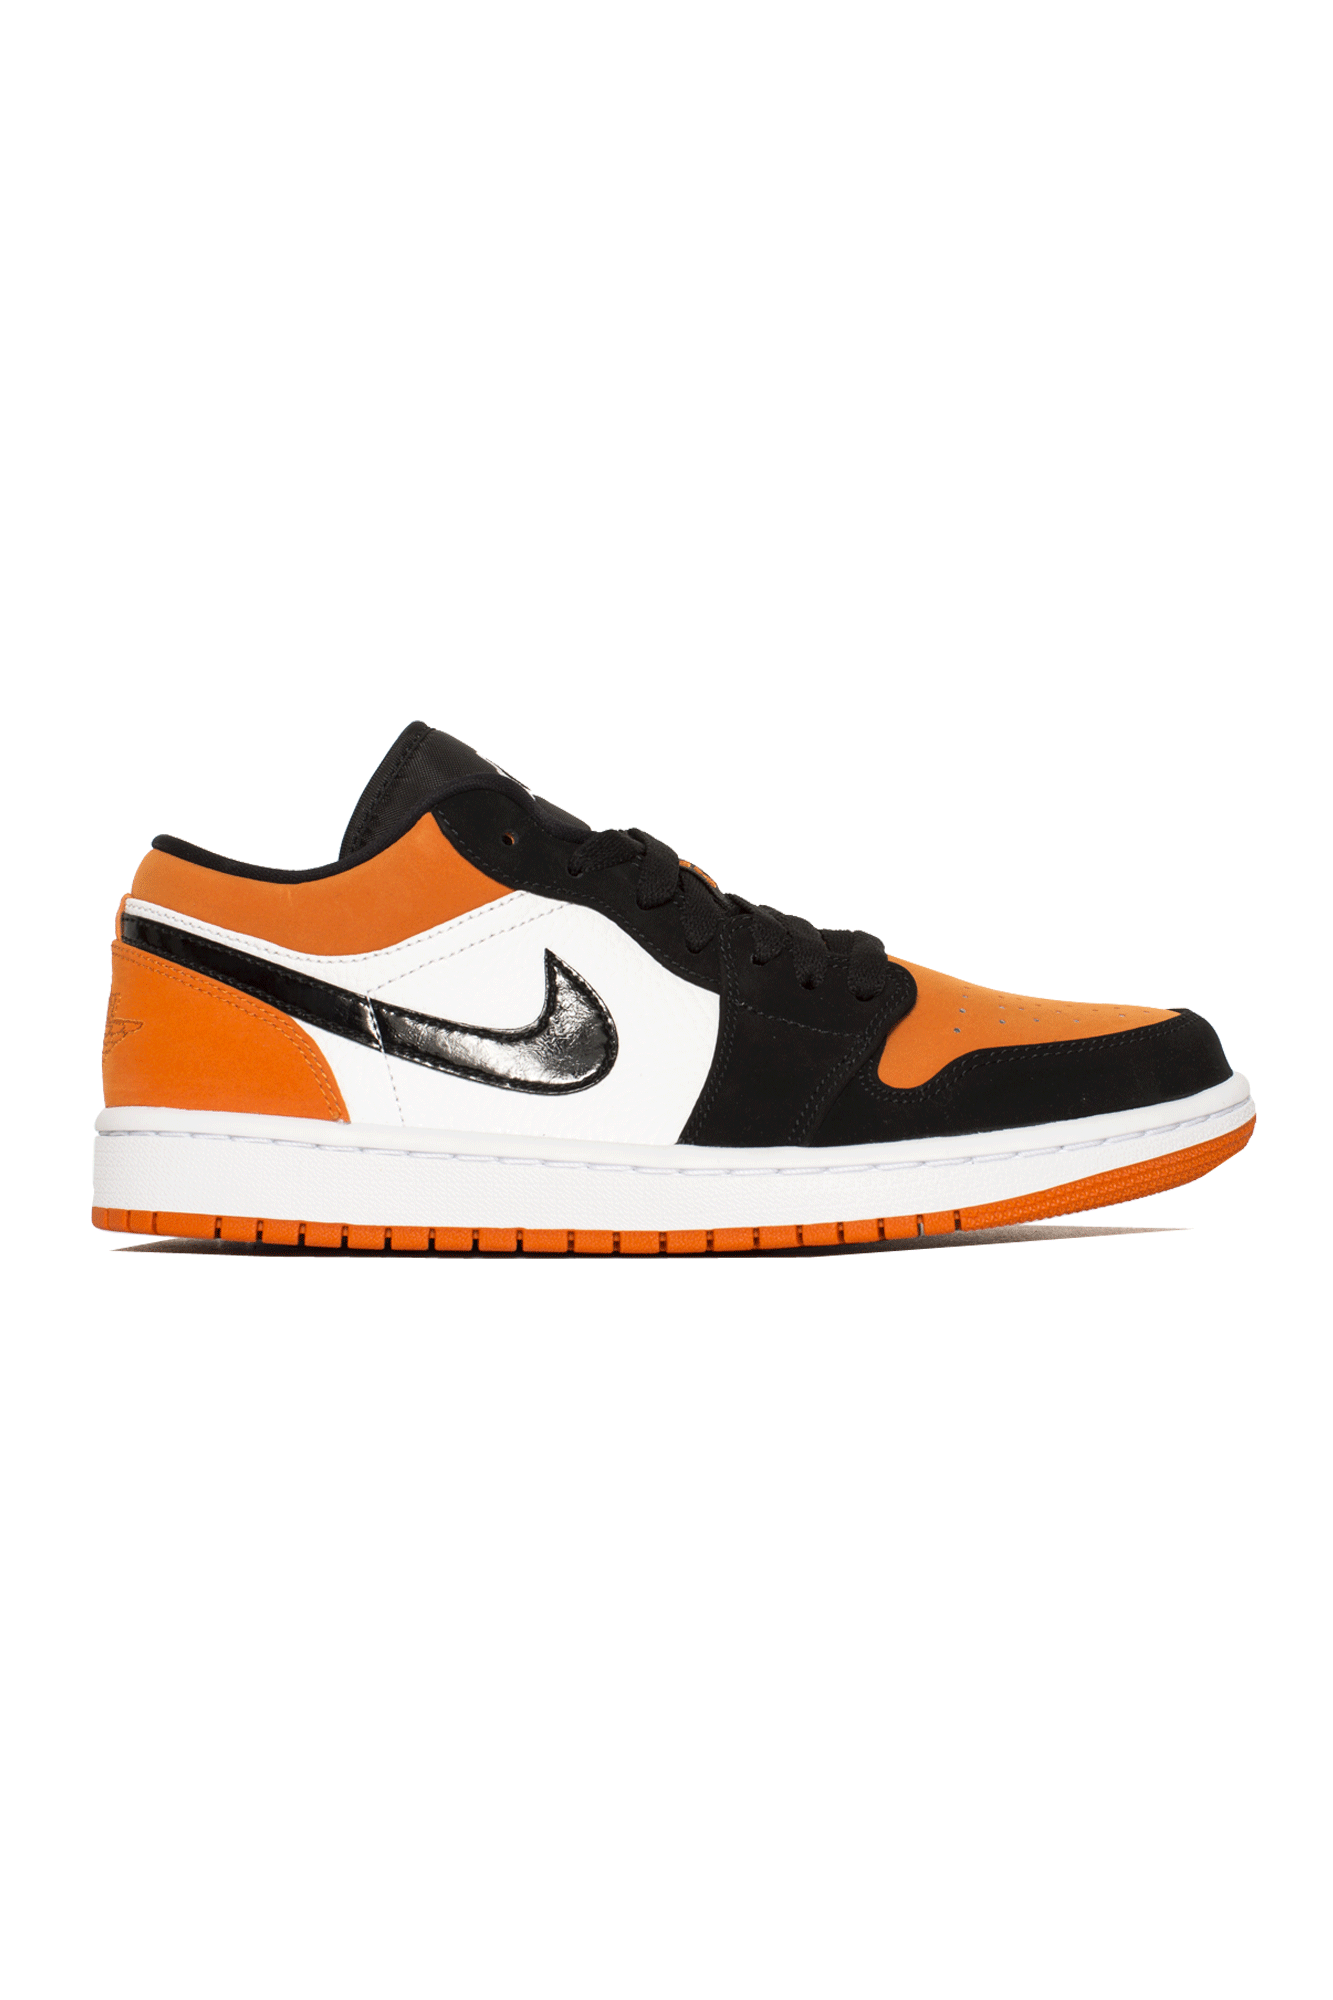 Air Jordan Sneakers 1 Low Orange 553558-#000#128#7 - One Block Down